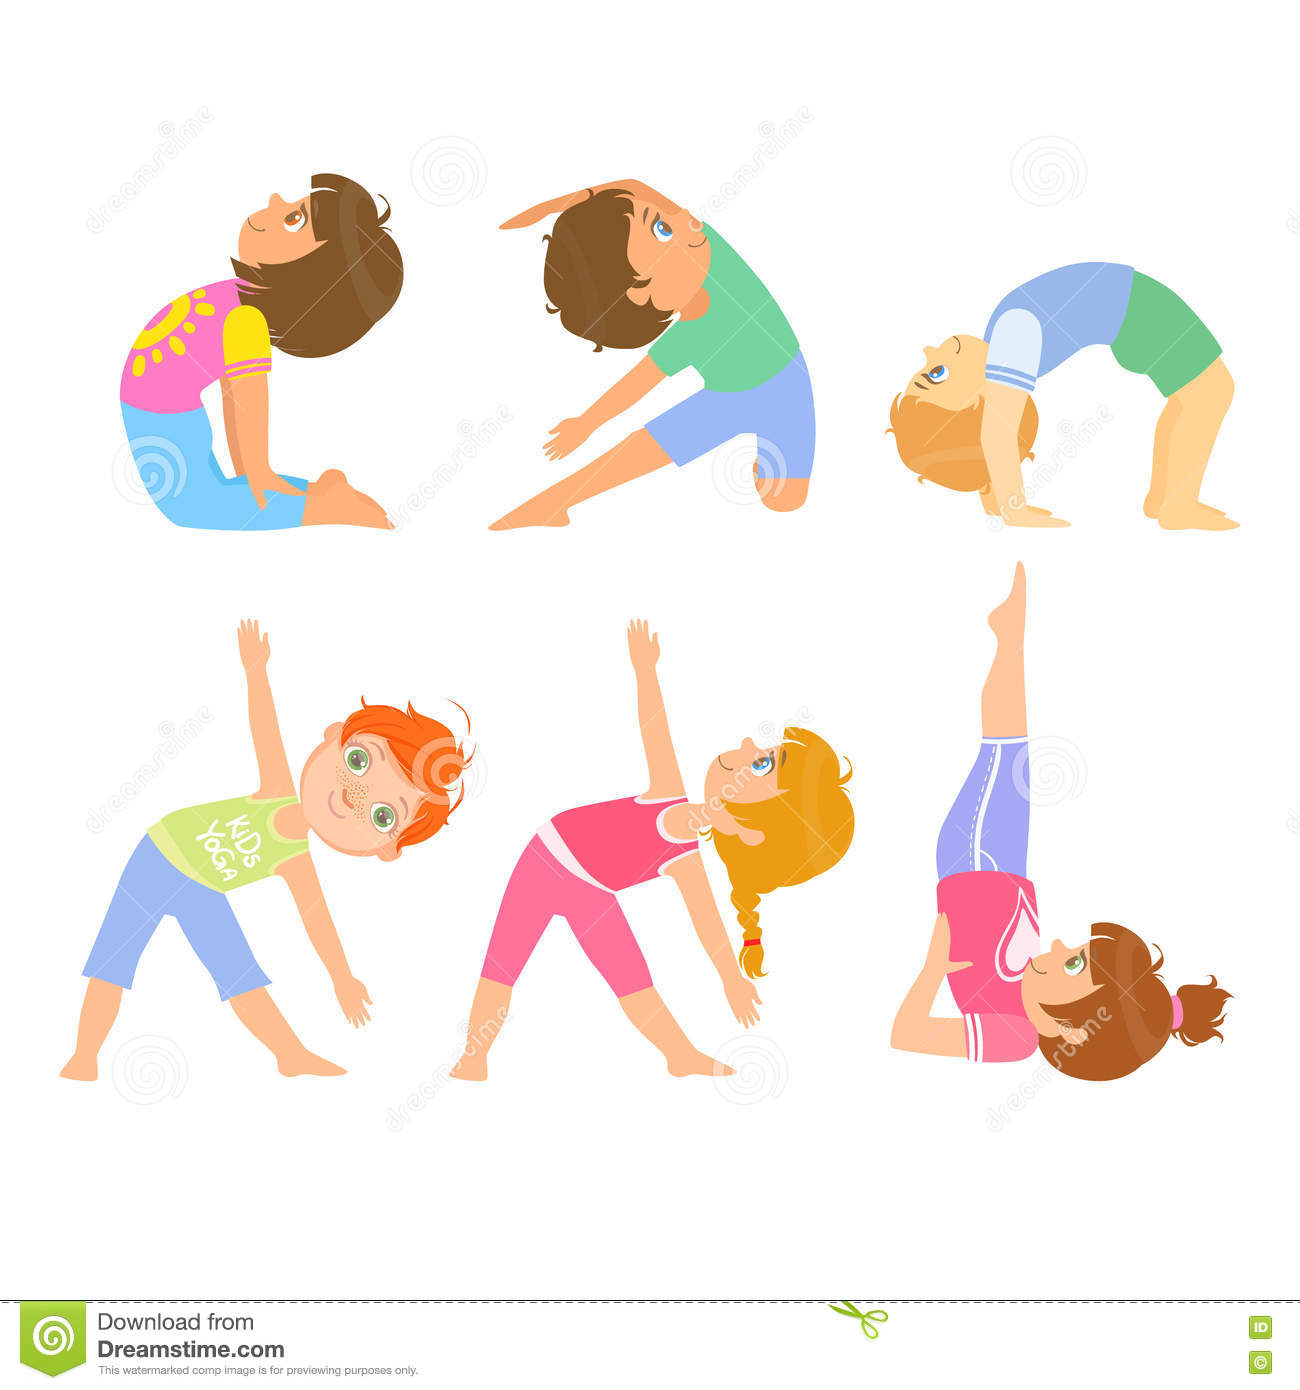 Kids Doing Simple Yoga Poses Stock Vector Illustration Of Oriental Colorful 72199263